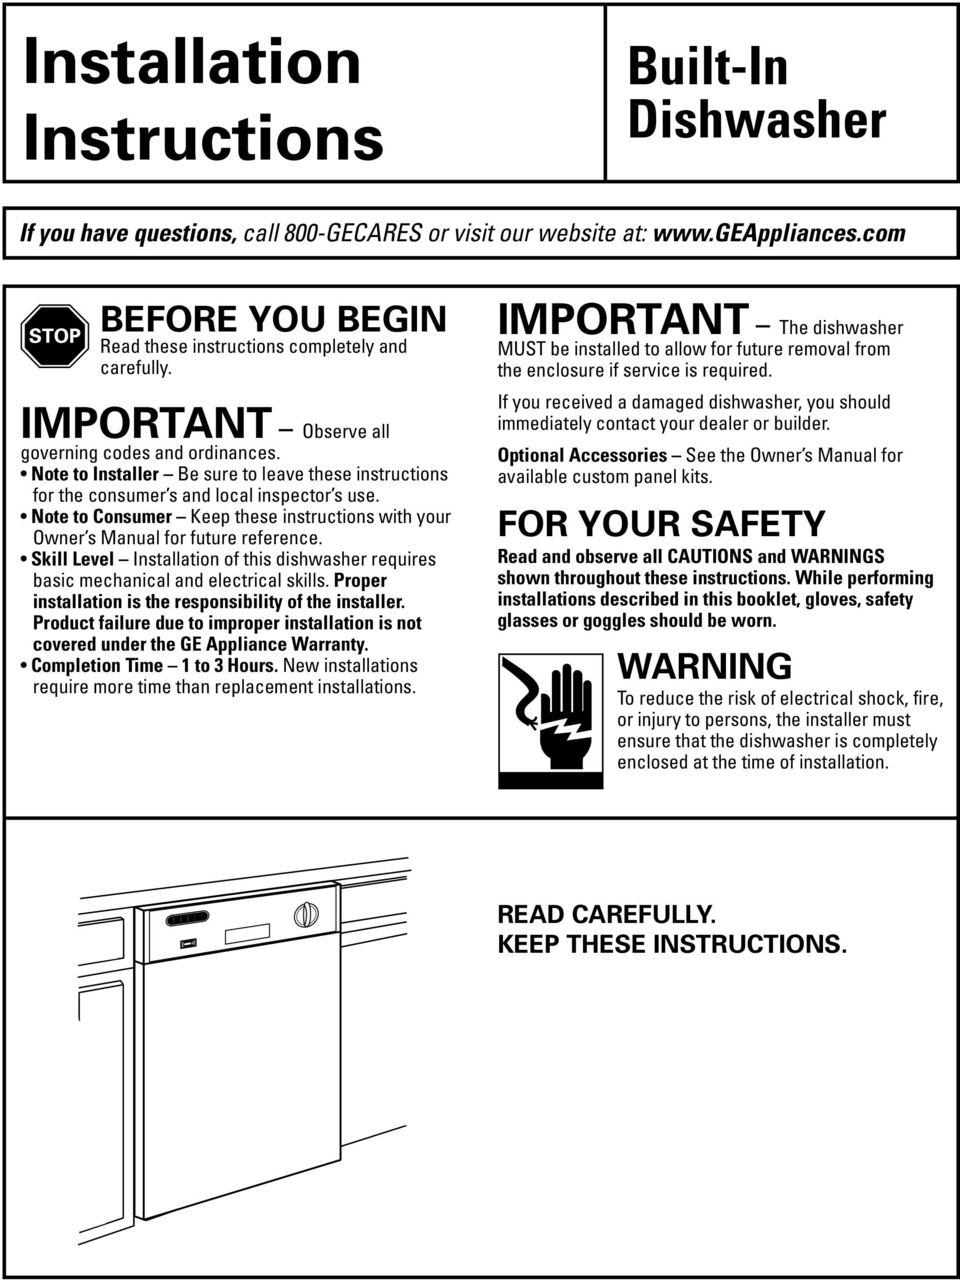 Note to Consumer Keep these instructions with your Owner s Manual for future reference. Skill Level Installation of this dishwasher requires basic mechanical and electrical skills.